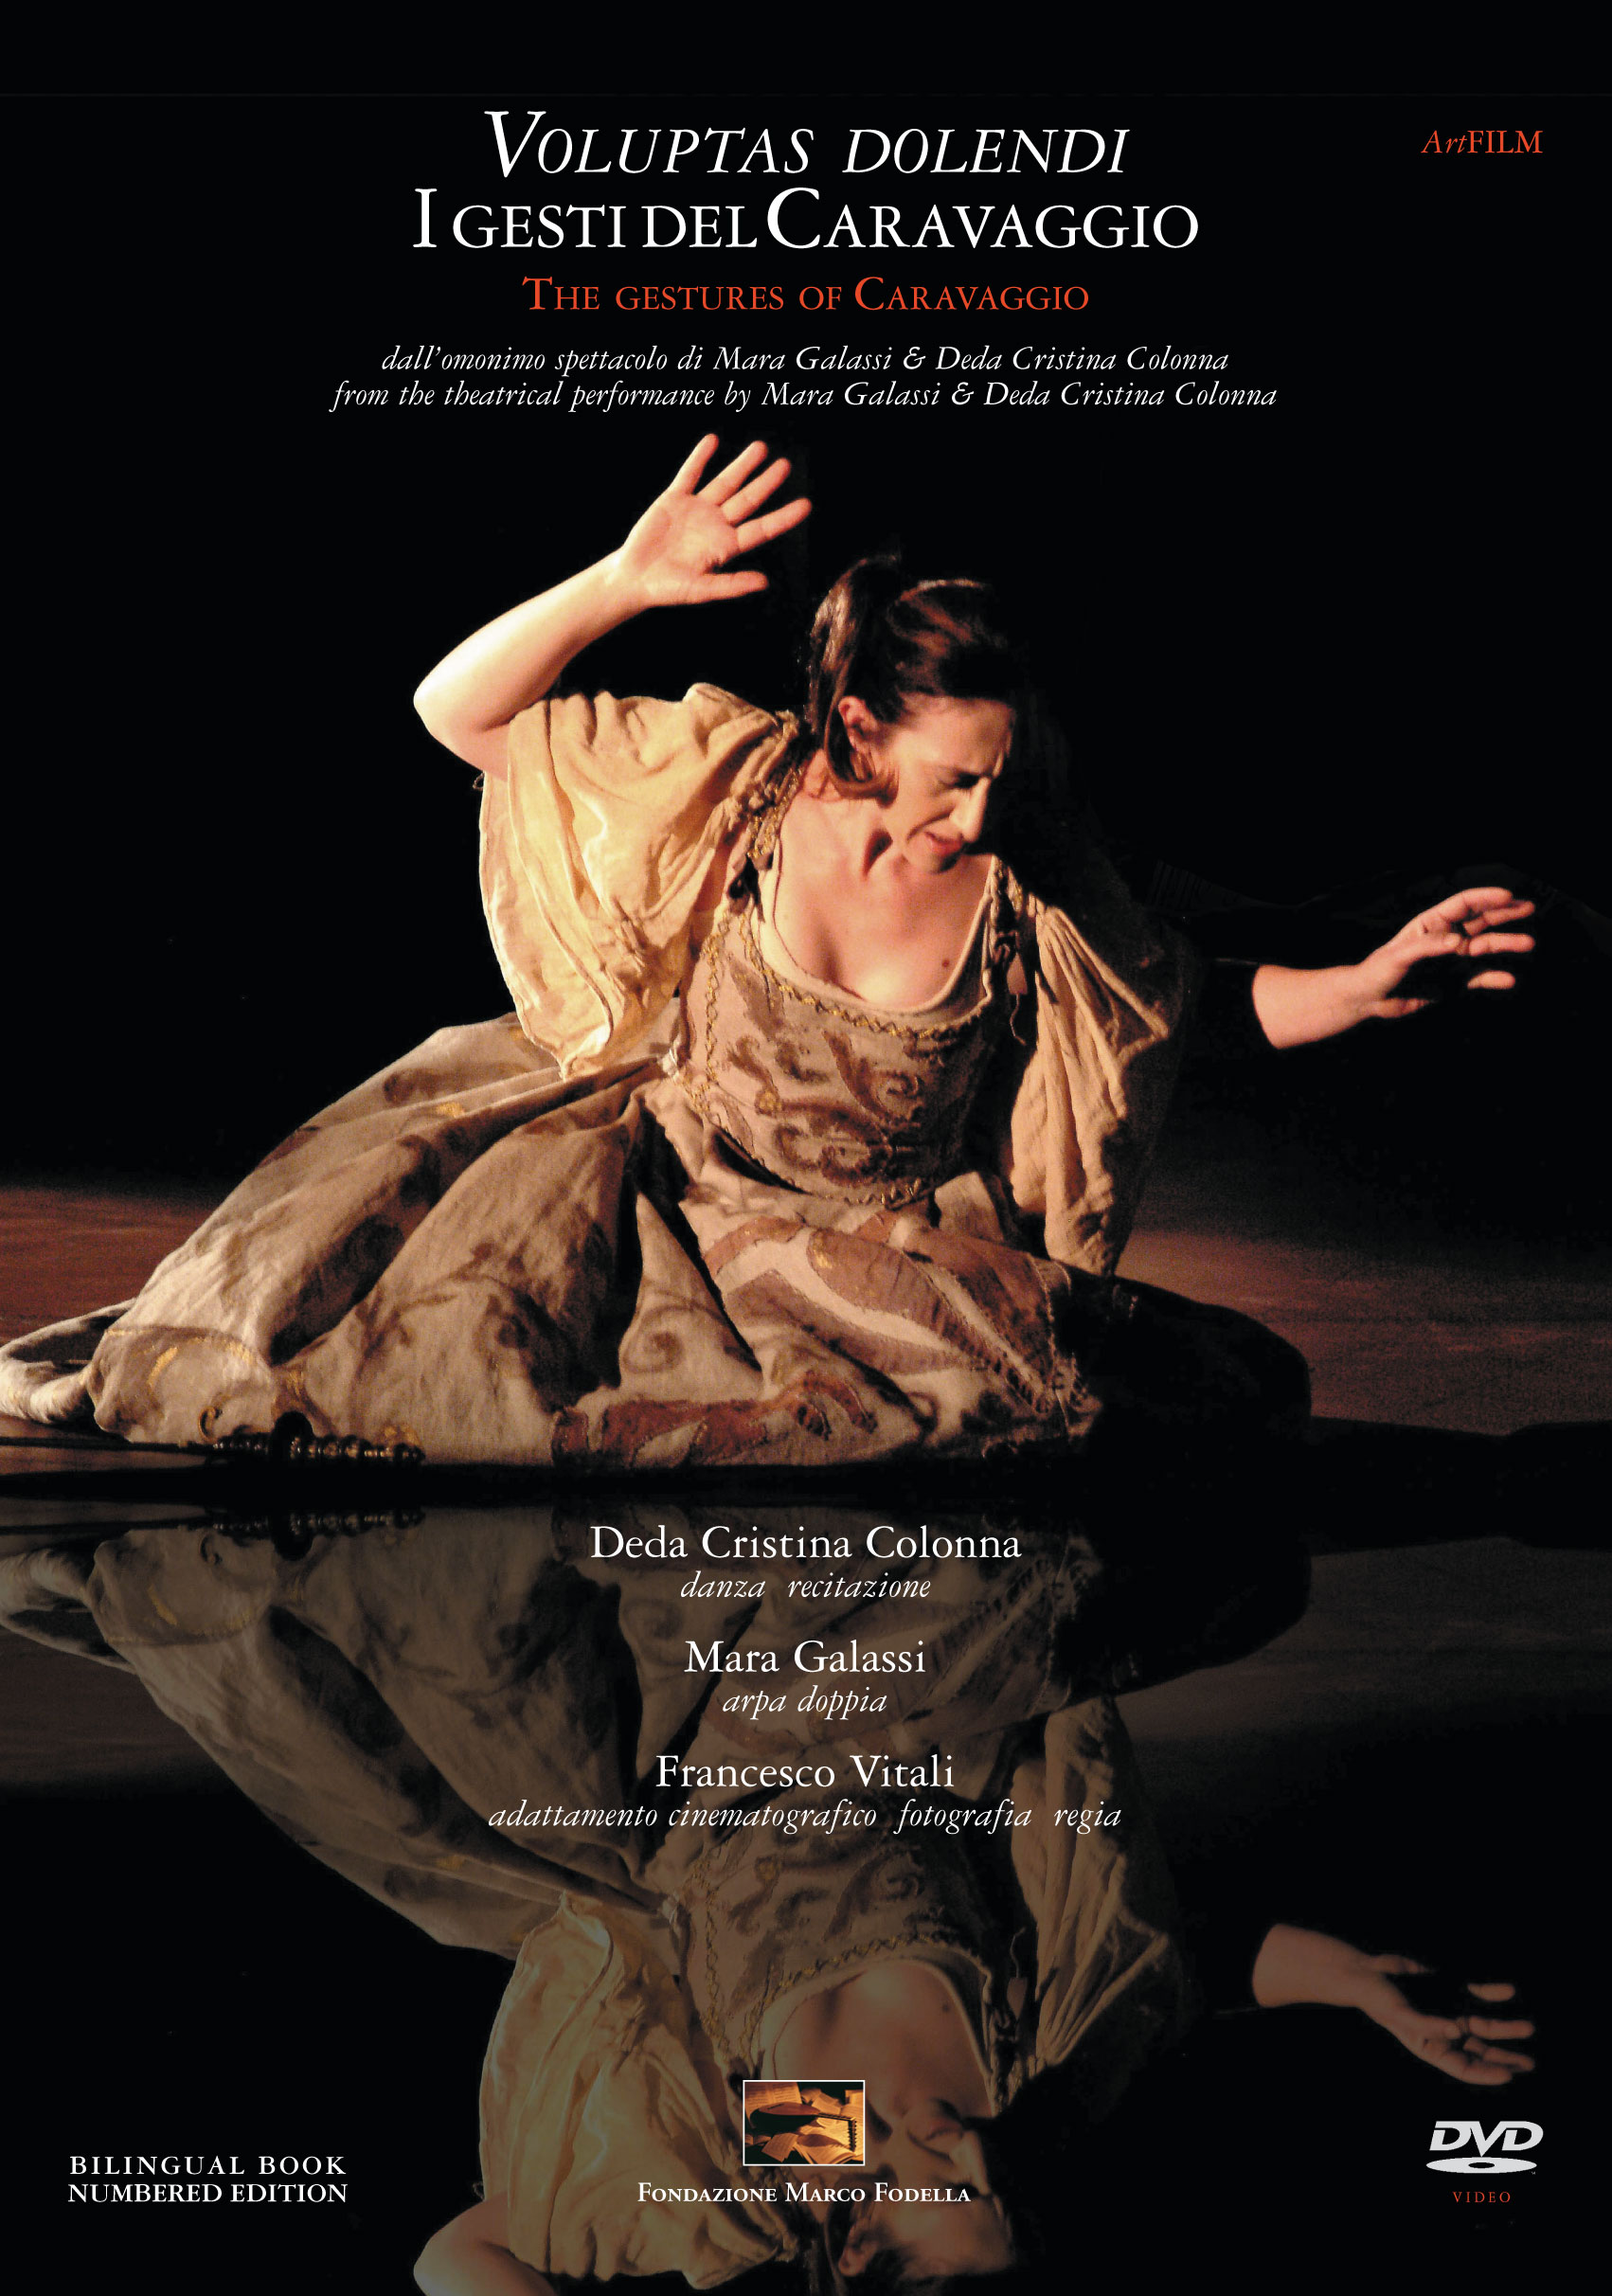 DVD Voluptas dolendi the gestures of Caravaggio 2008